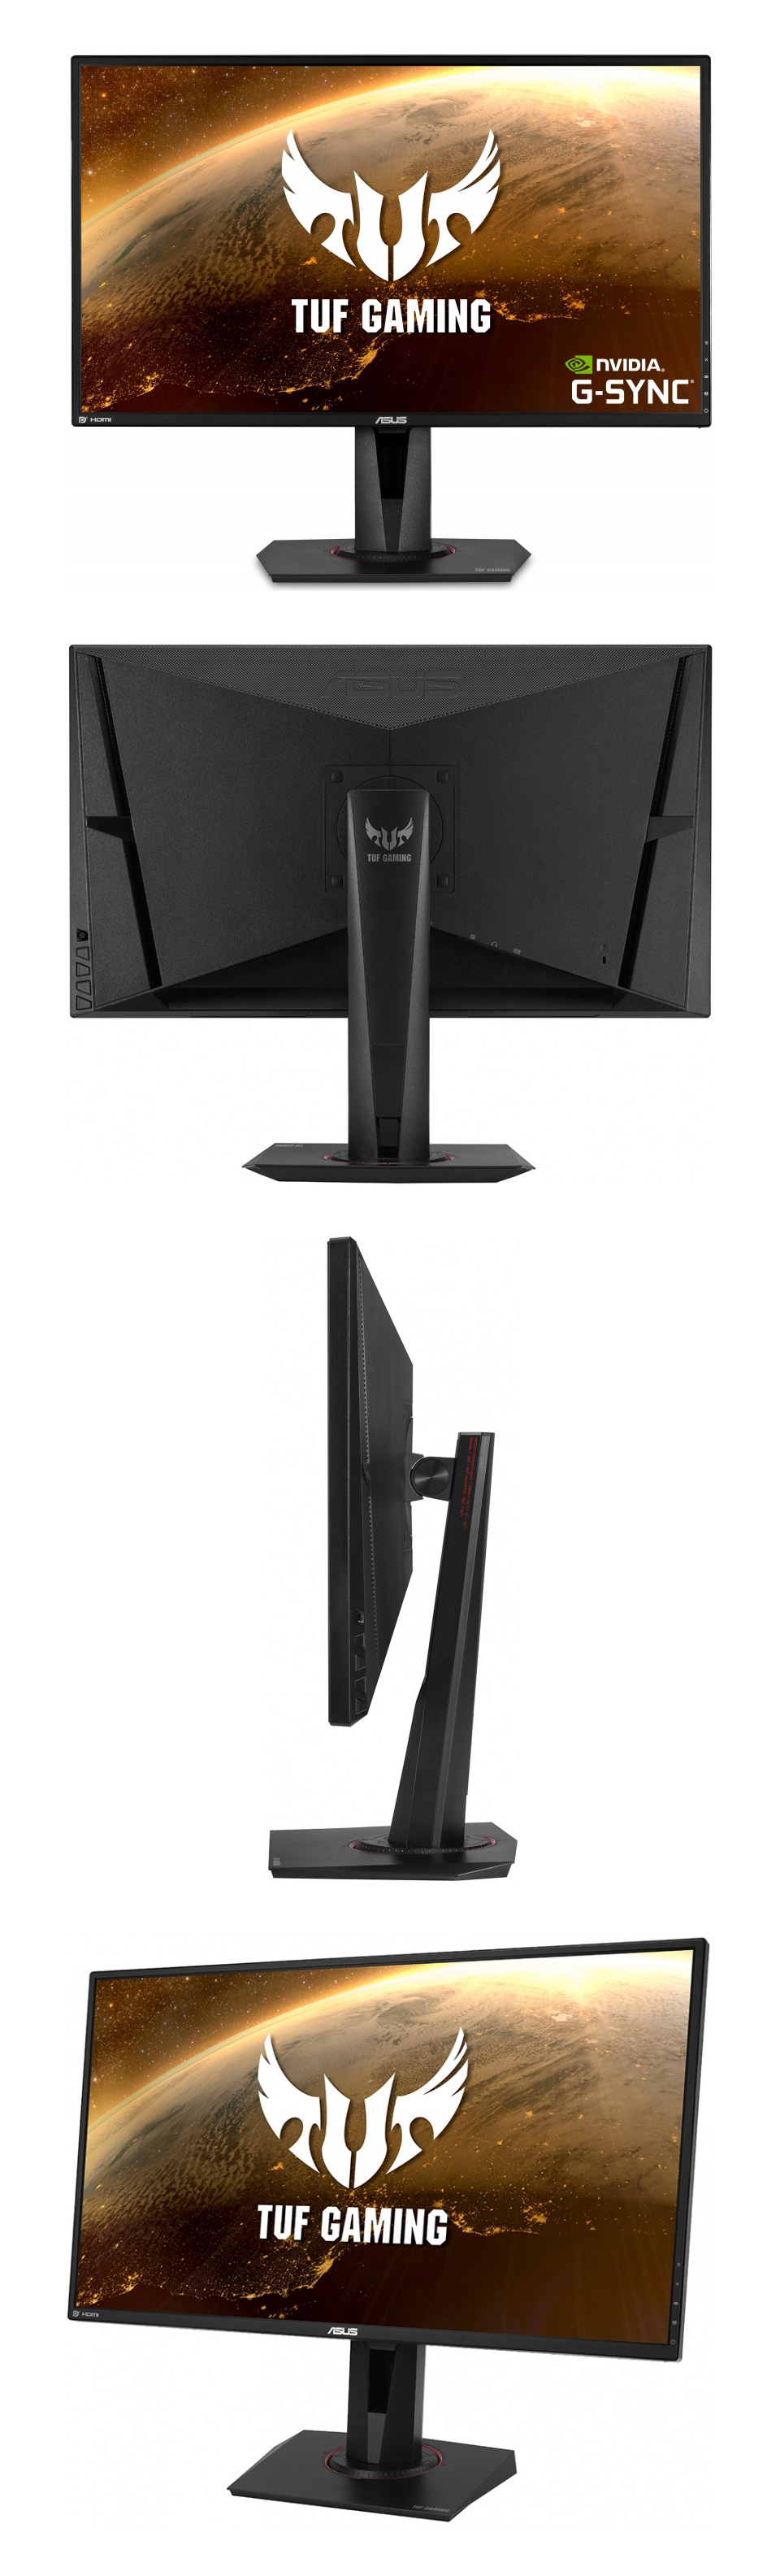 ASUS TUF VG27AQ WQHD 165hz G-Sync IPS 27in Monitor product